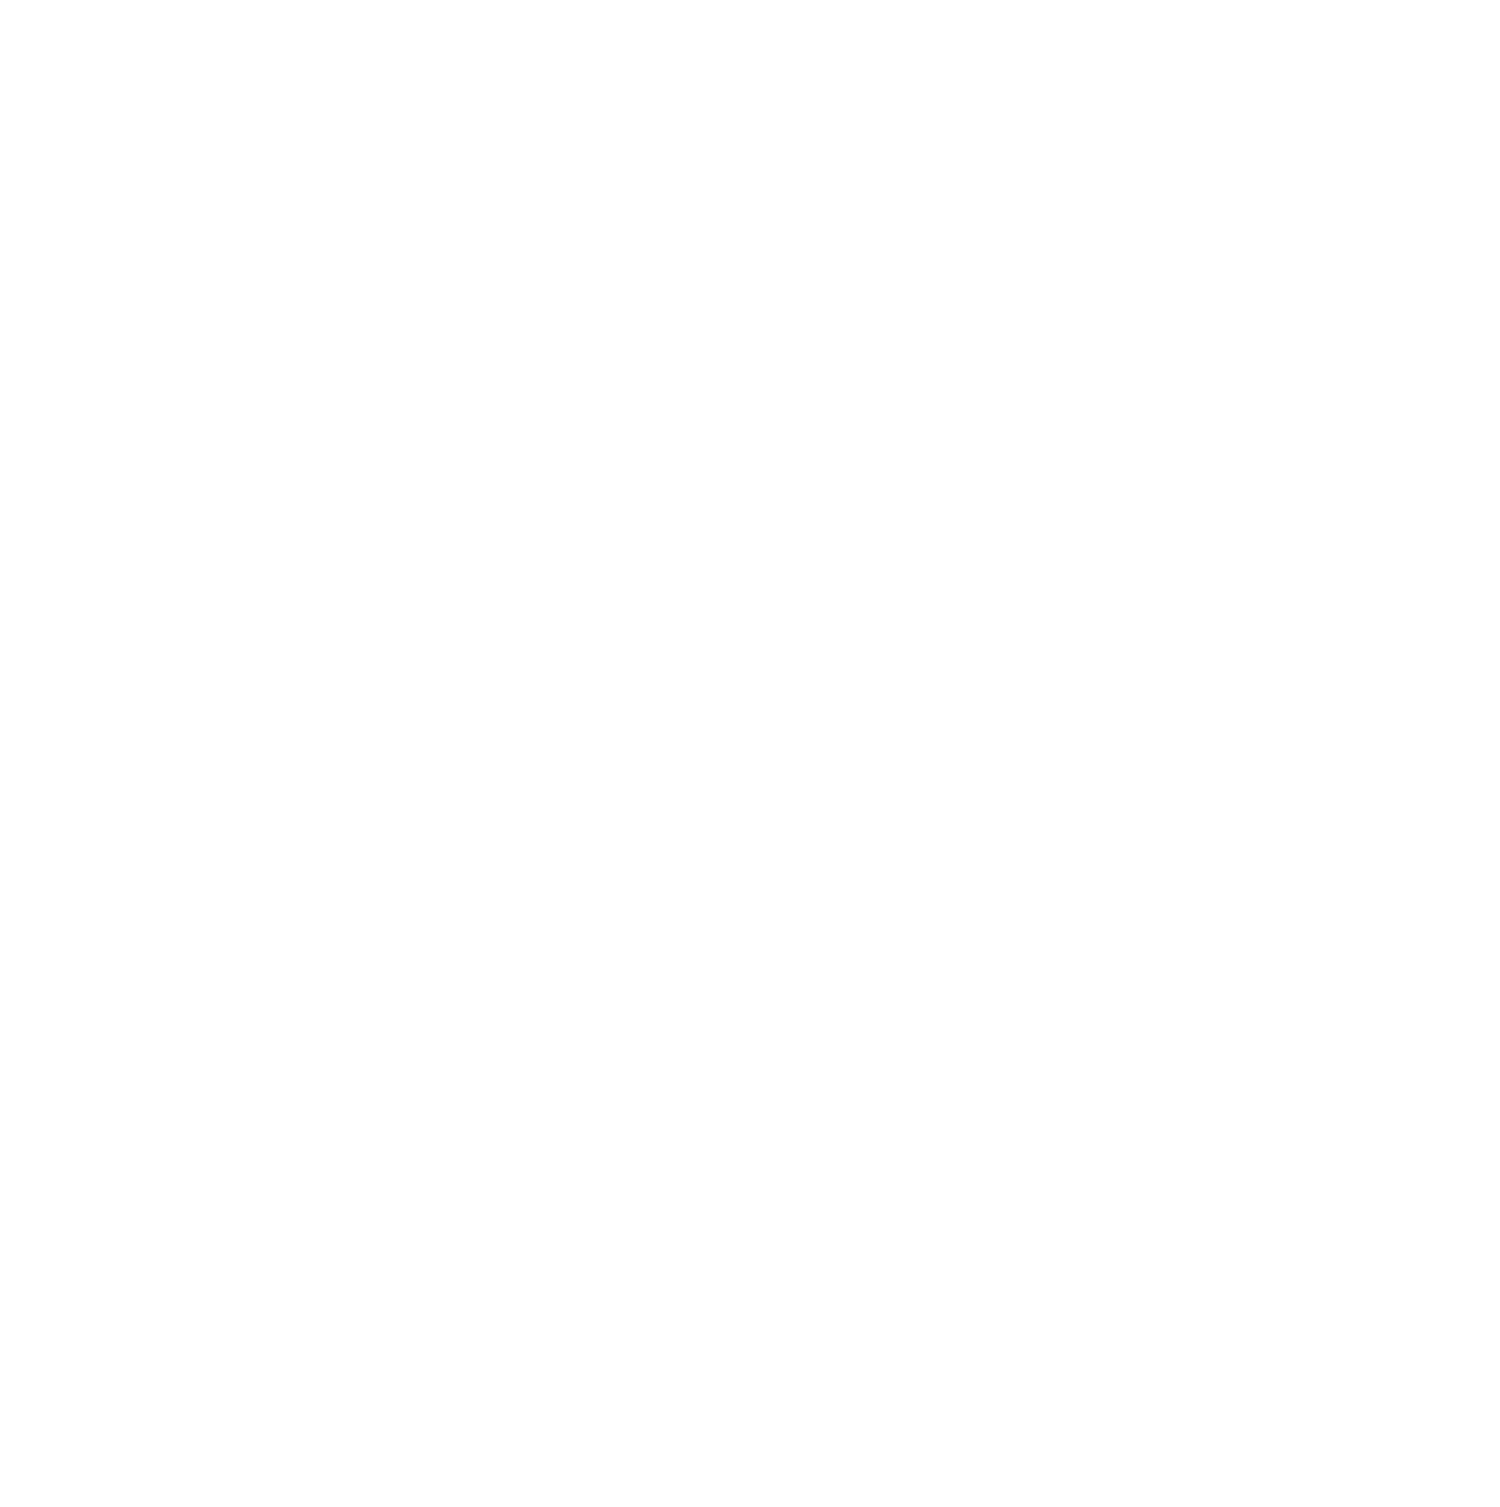 Africa by Design Safaris